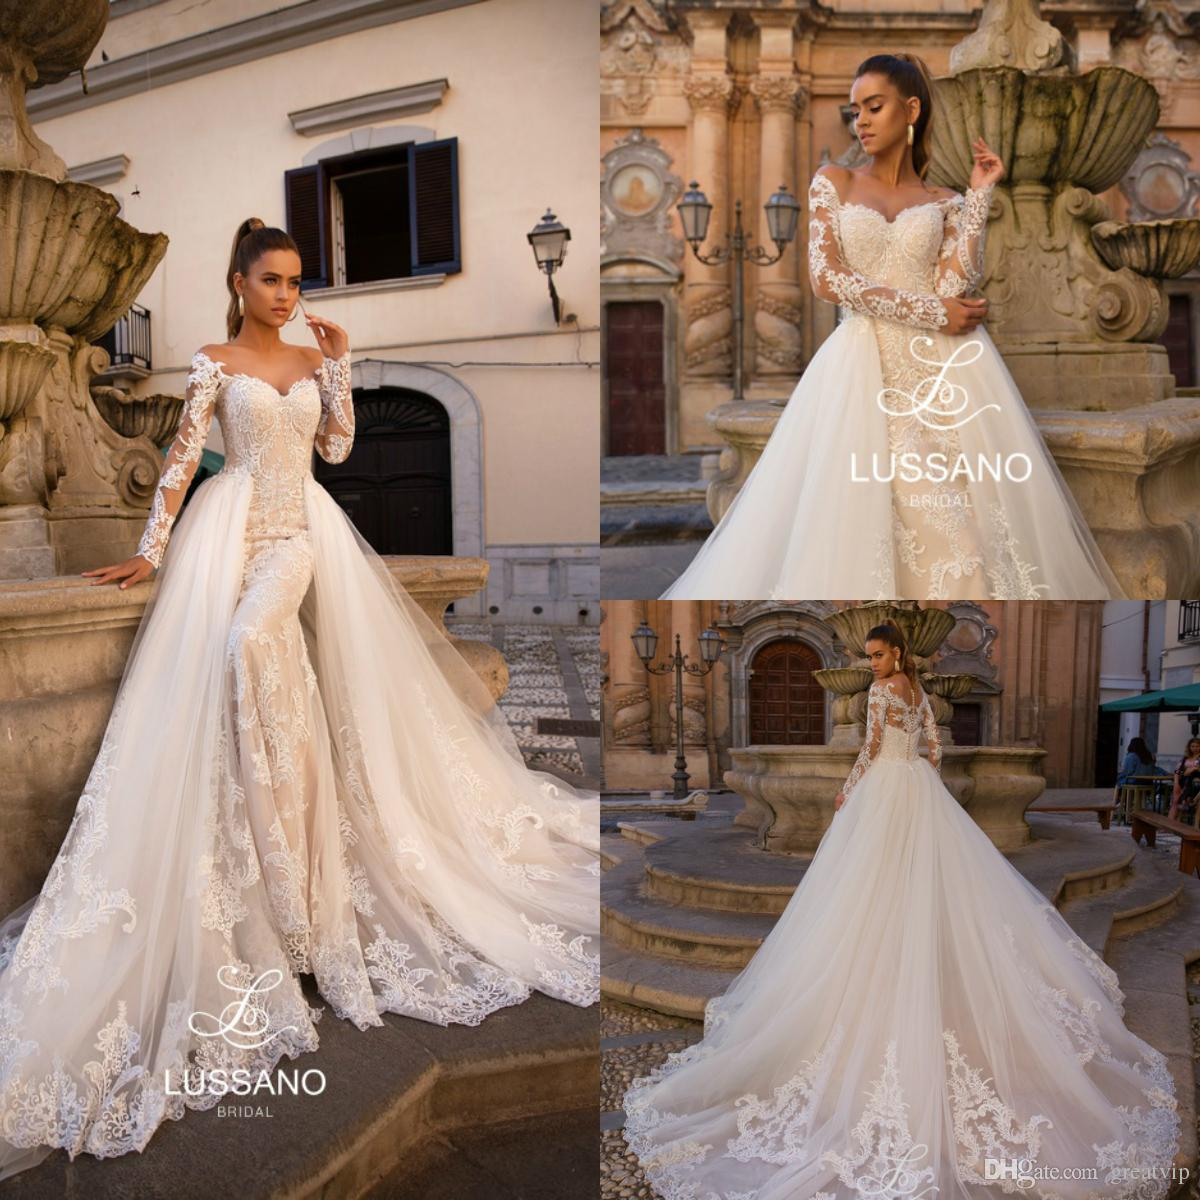 Lussano 2019 Mermaid Beach Wedding Dresses With Detachable Train Sweetheart  Lace Long Sleeve Boho Bridal Gowns Plus Size Vestidos De Noiva Tea Length  ... d601496a7c45